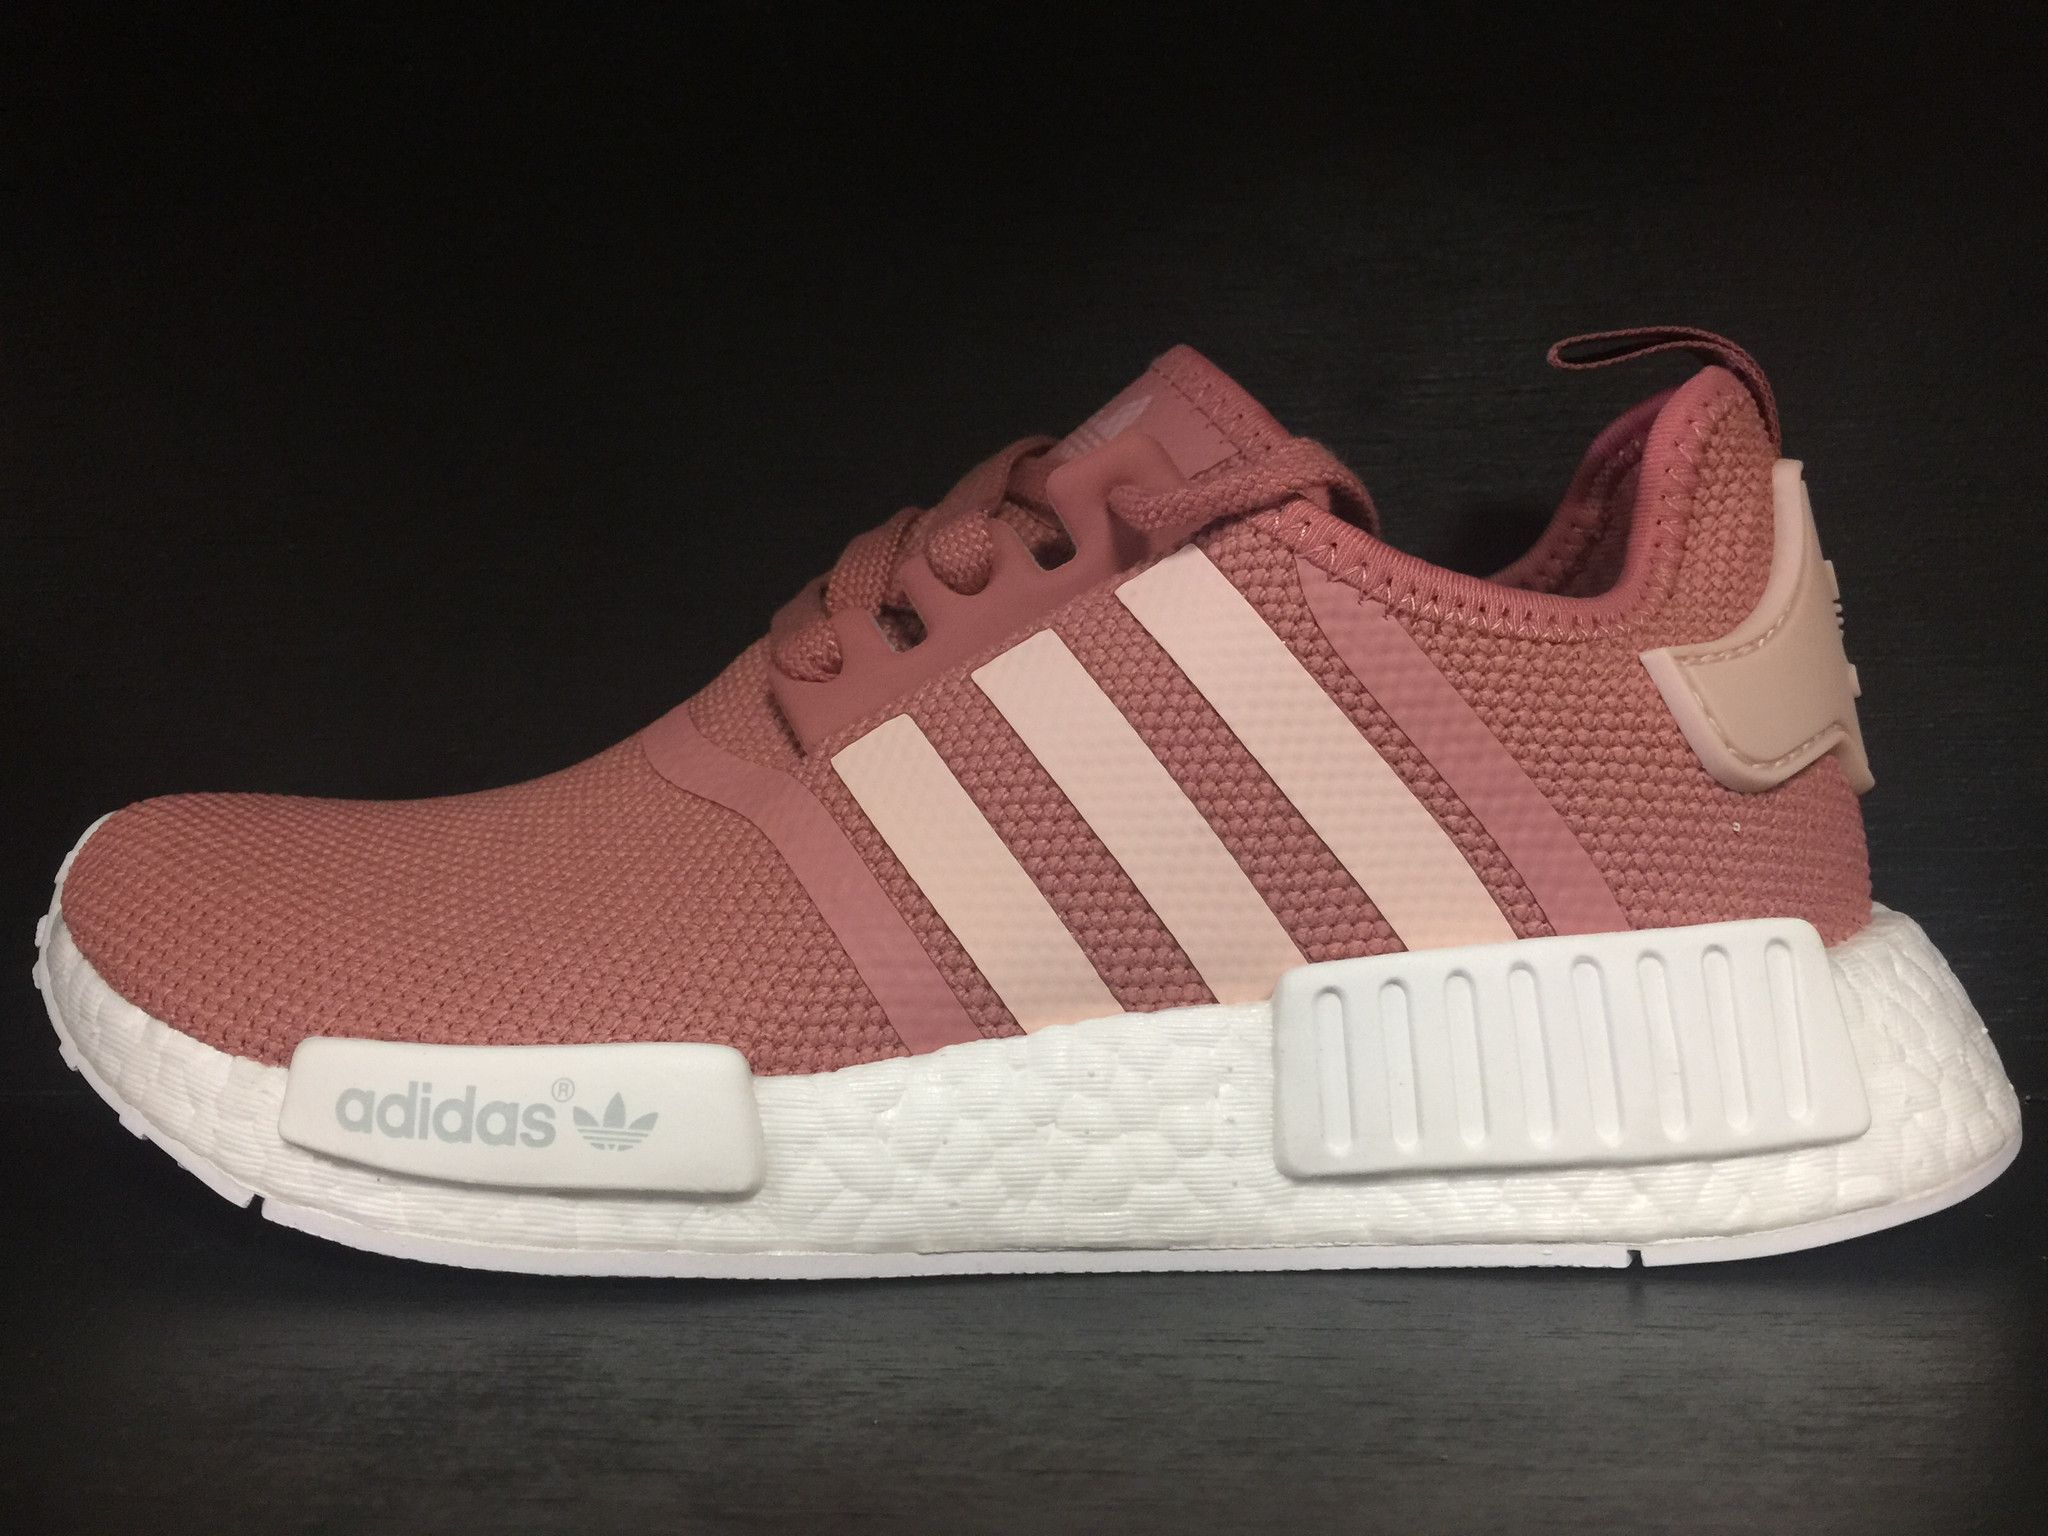 Adidas NMD R1 PK Tricolor Grey men's size 8 other Calgary